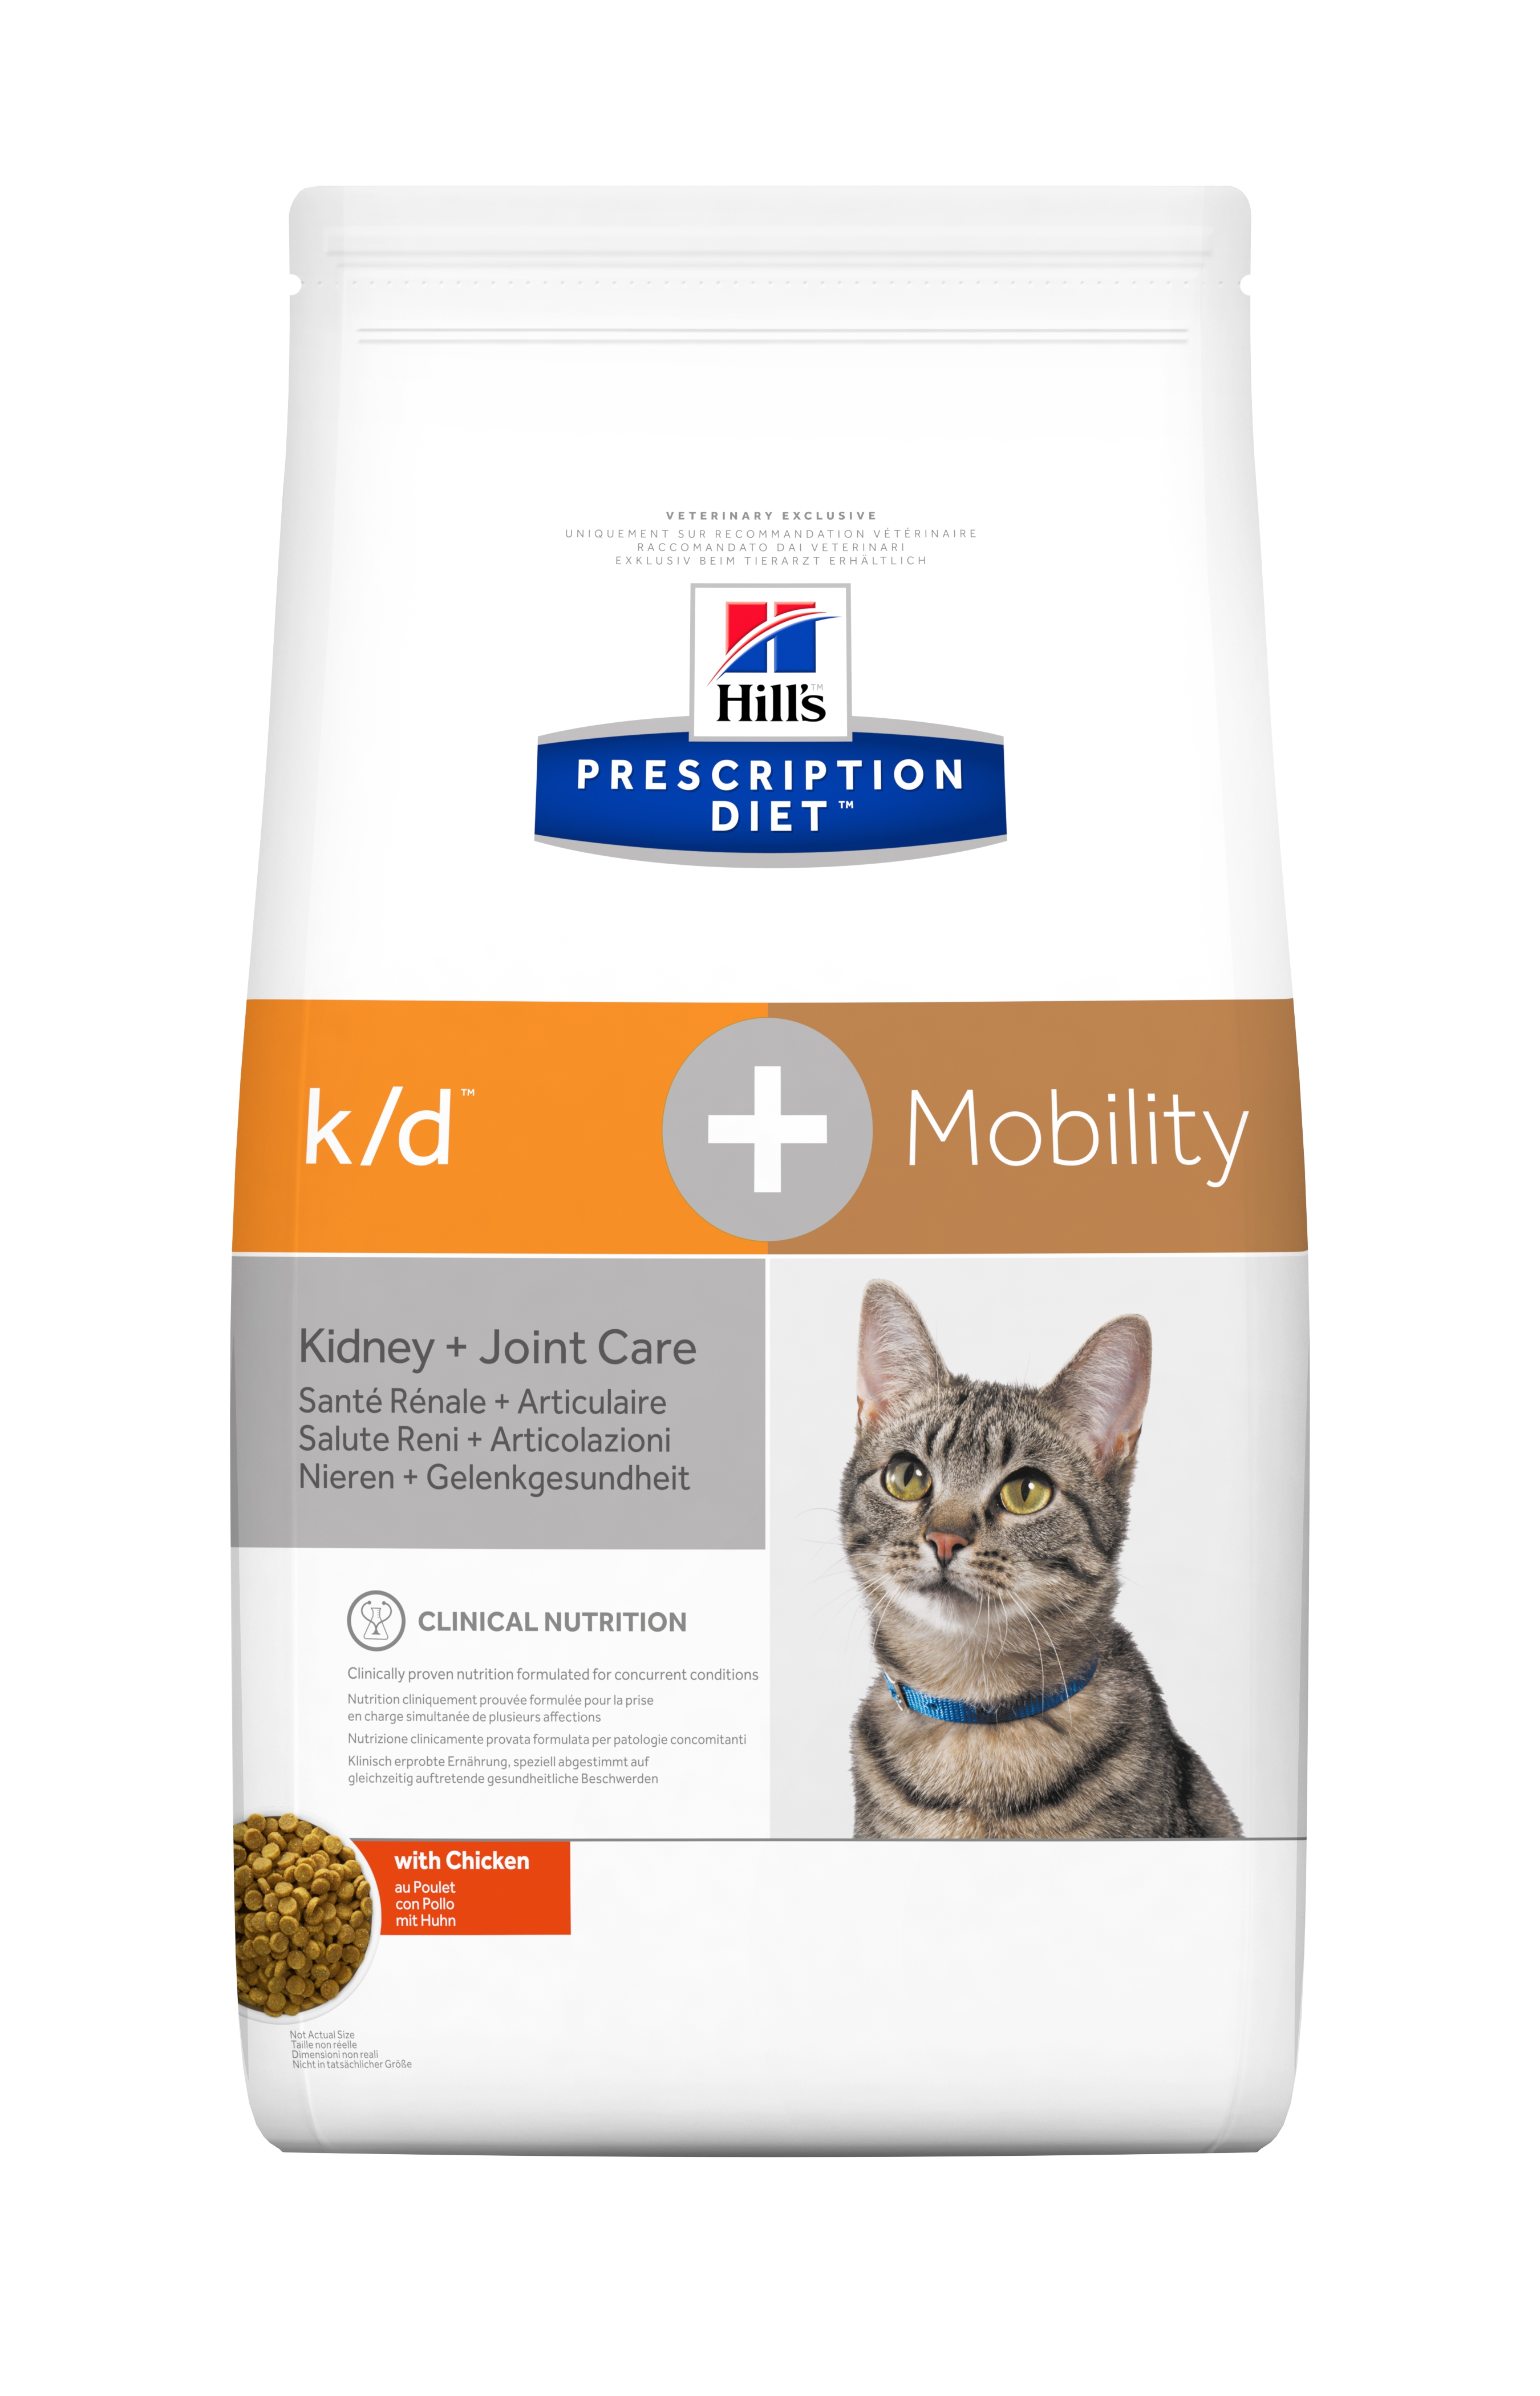 Hill's PD k/d + Mobility Kidney Care + Joint Care hrana pentru pisici, 5 kg imagine